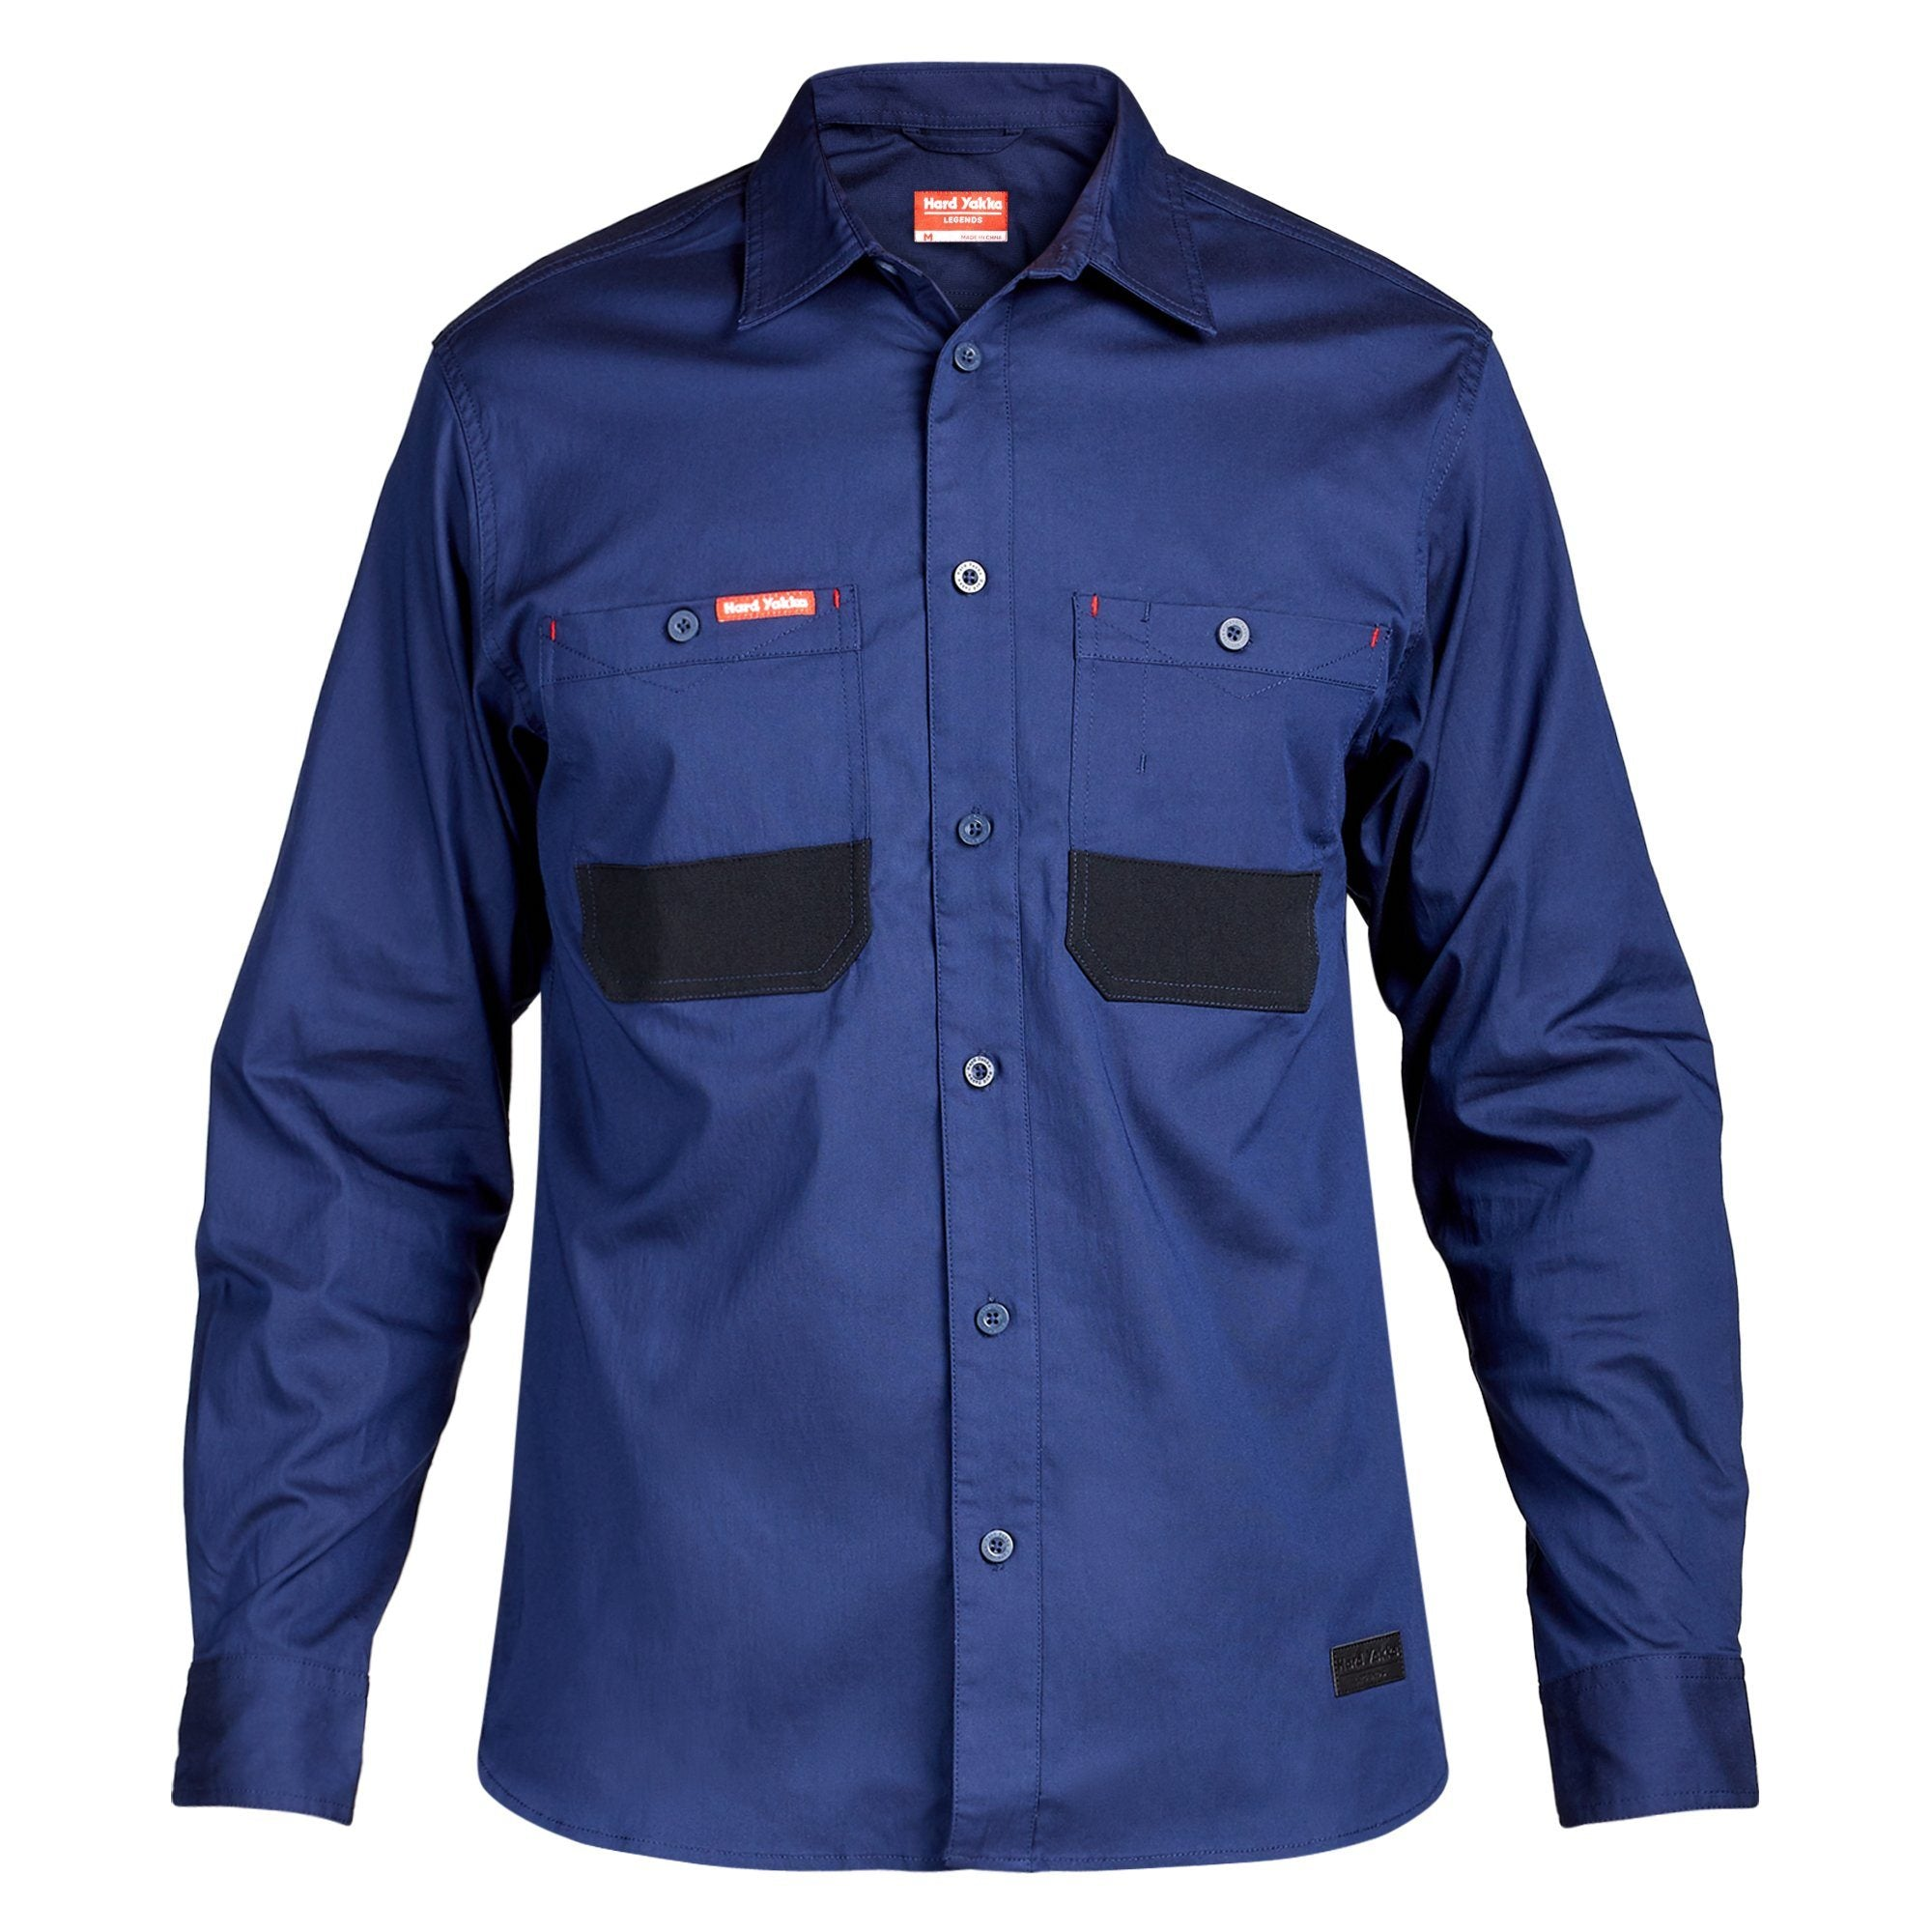 Hard Yakka Legends 3D Stretch LS Shirt - Navy/Black Workwear Isbister & Co